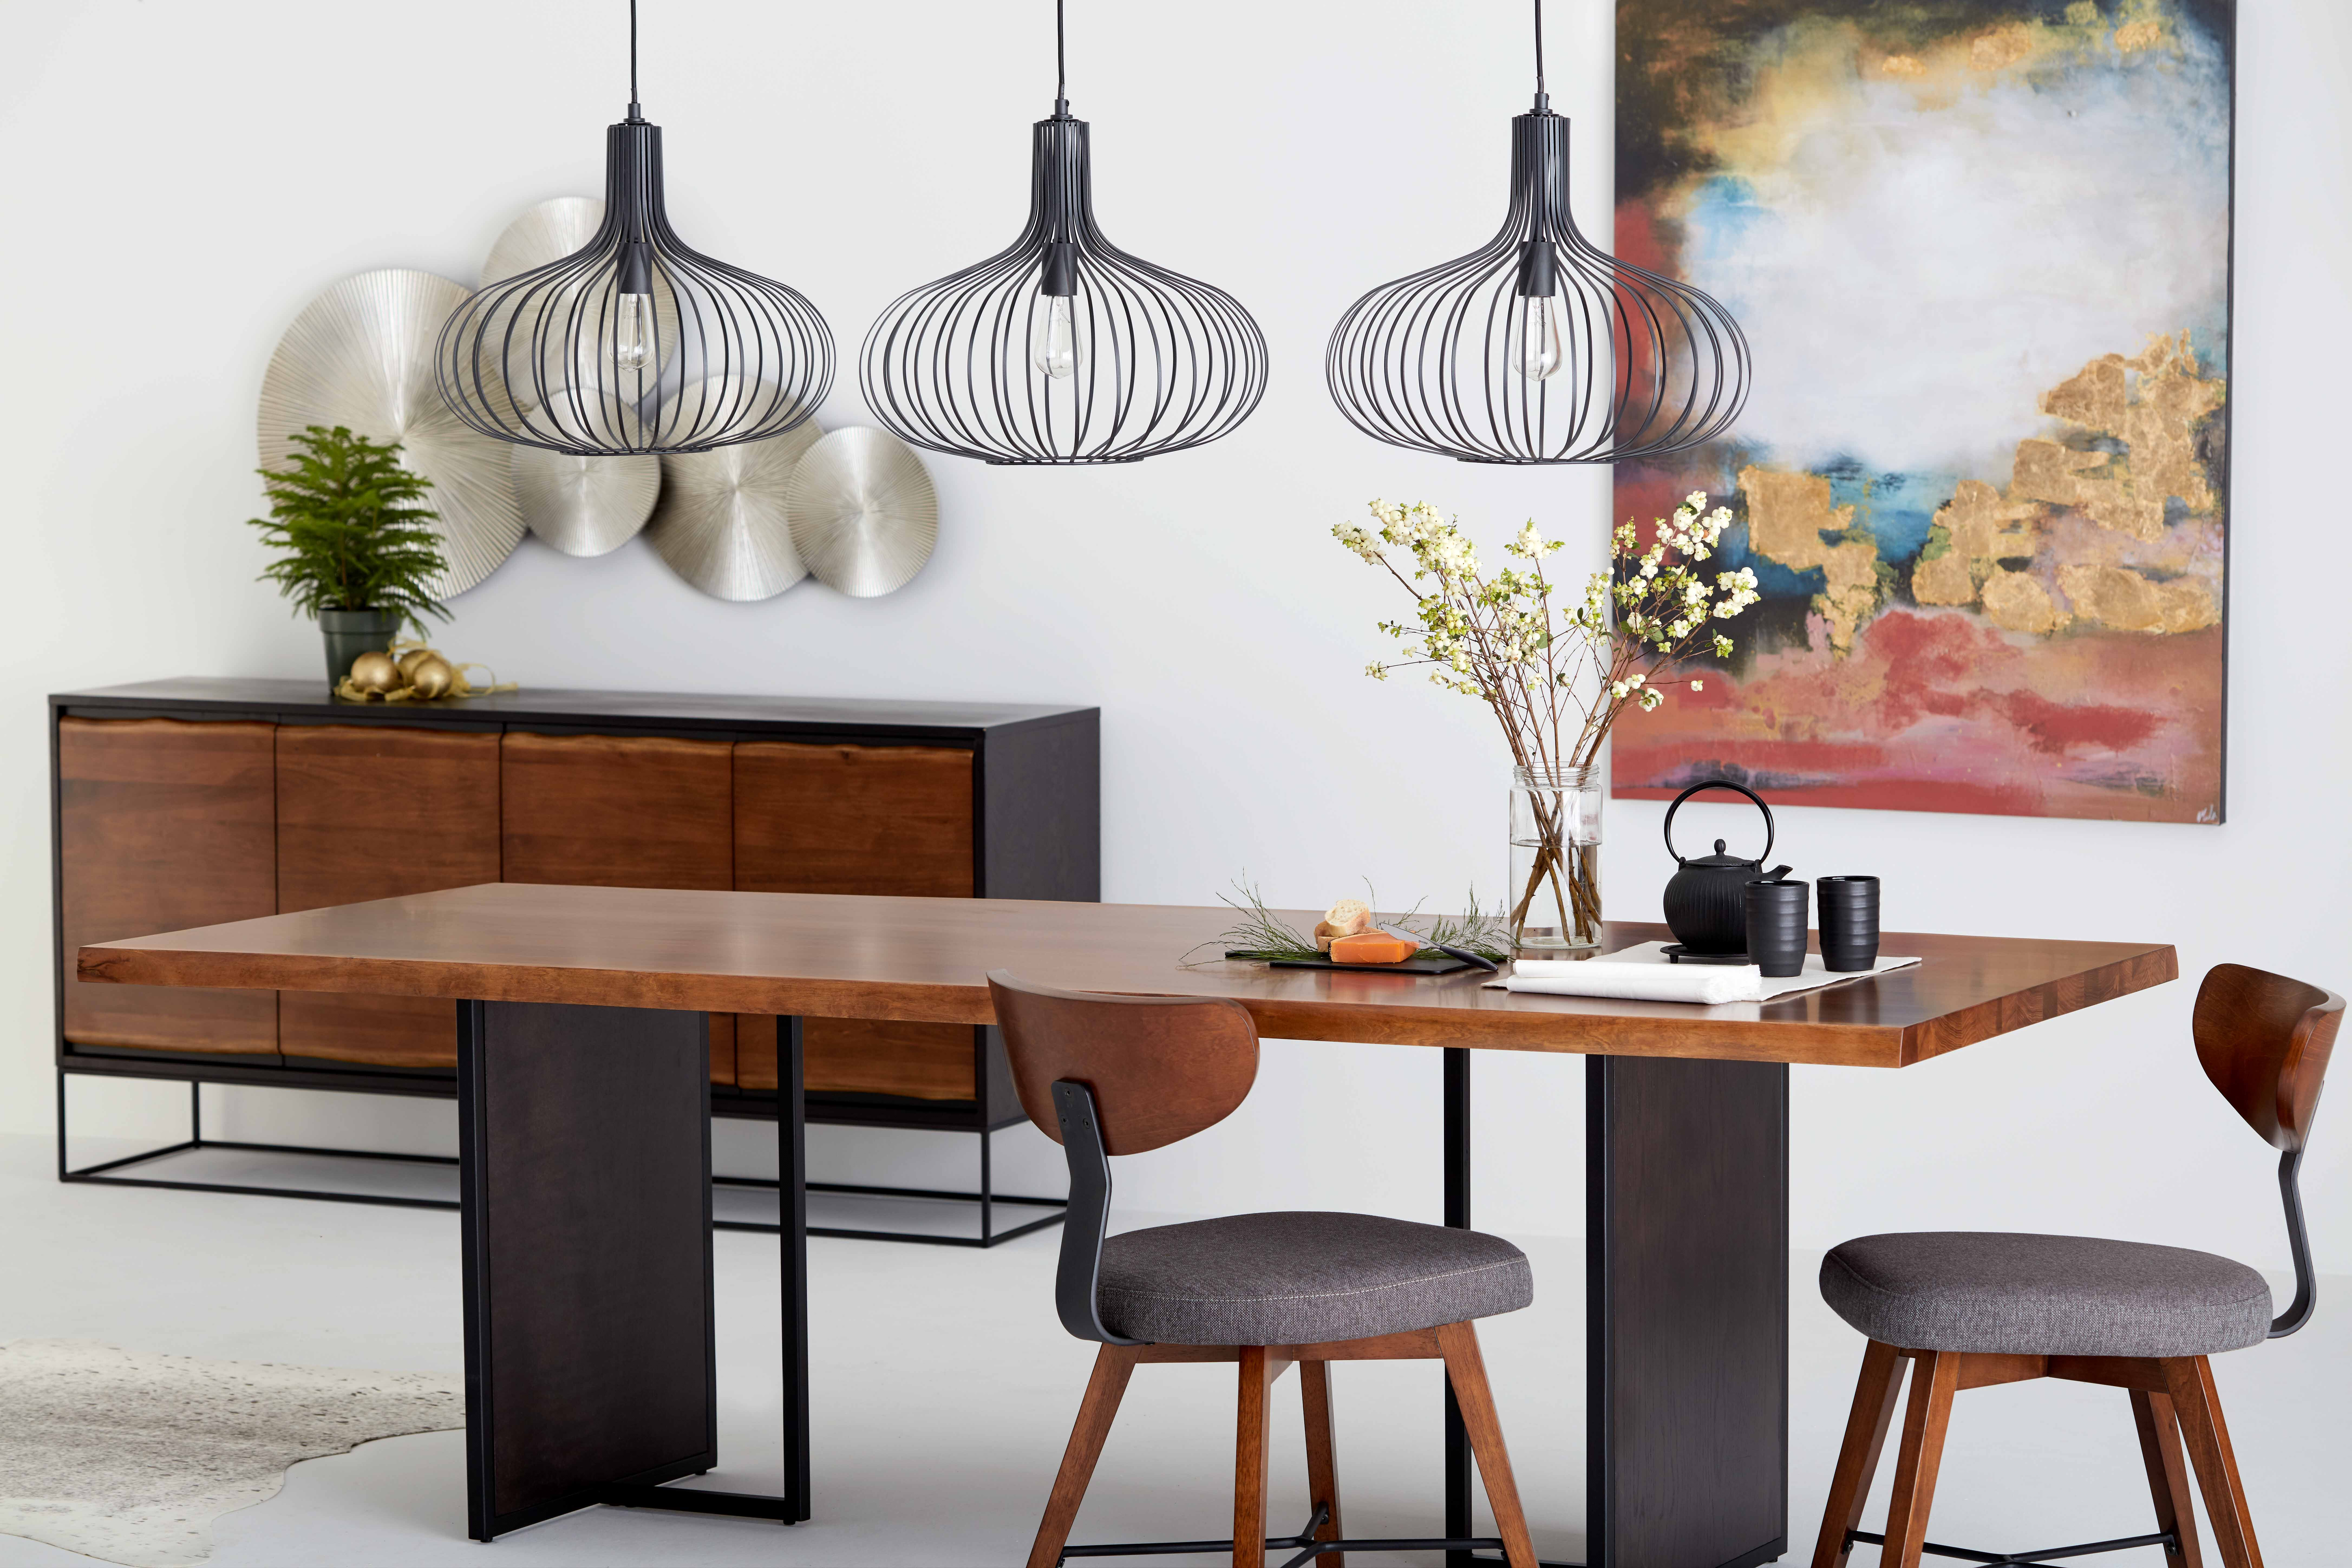 Dining room composed of a beautiful wooden and steel table surrounded by 2 chairs. Above the table there are 3 pendant lamps.